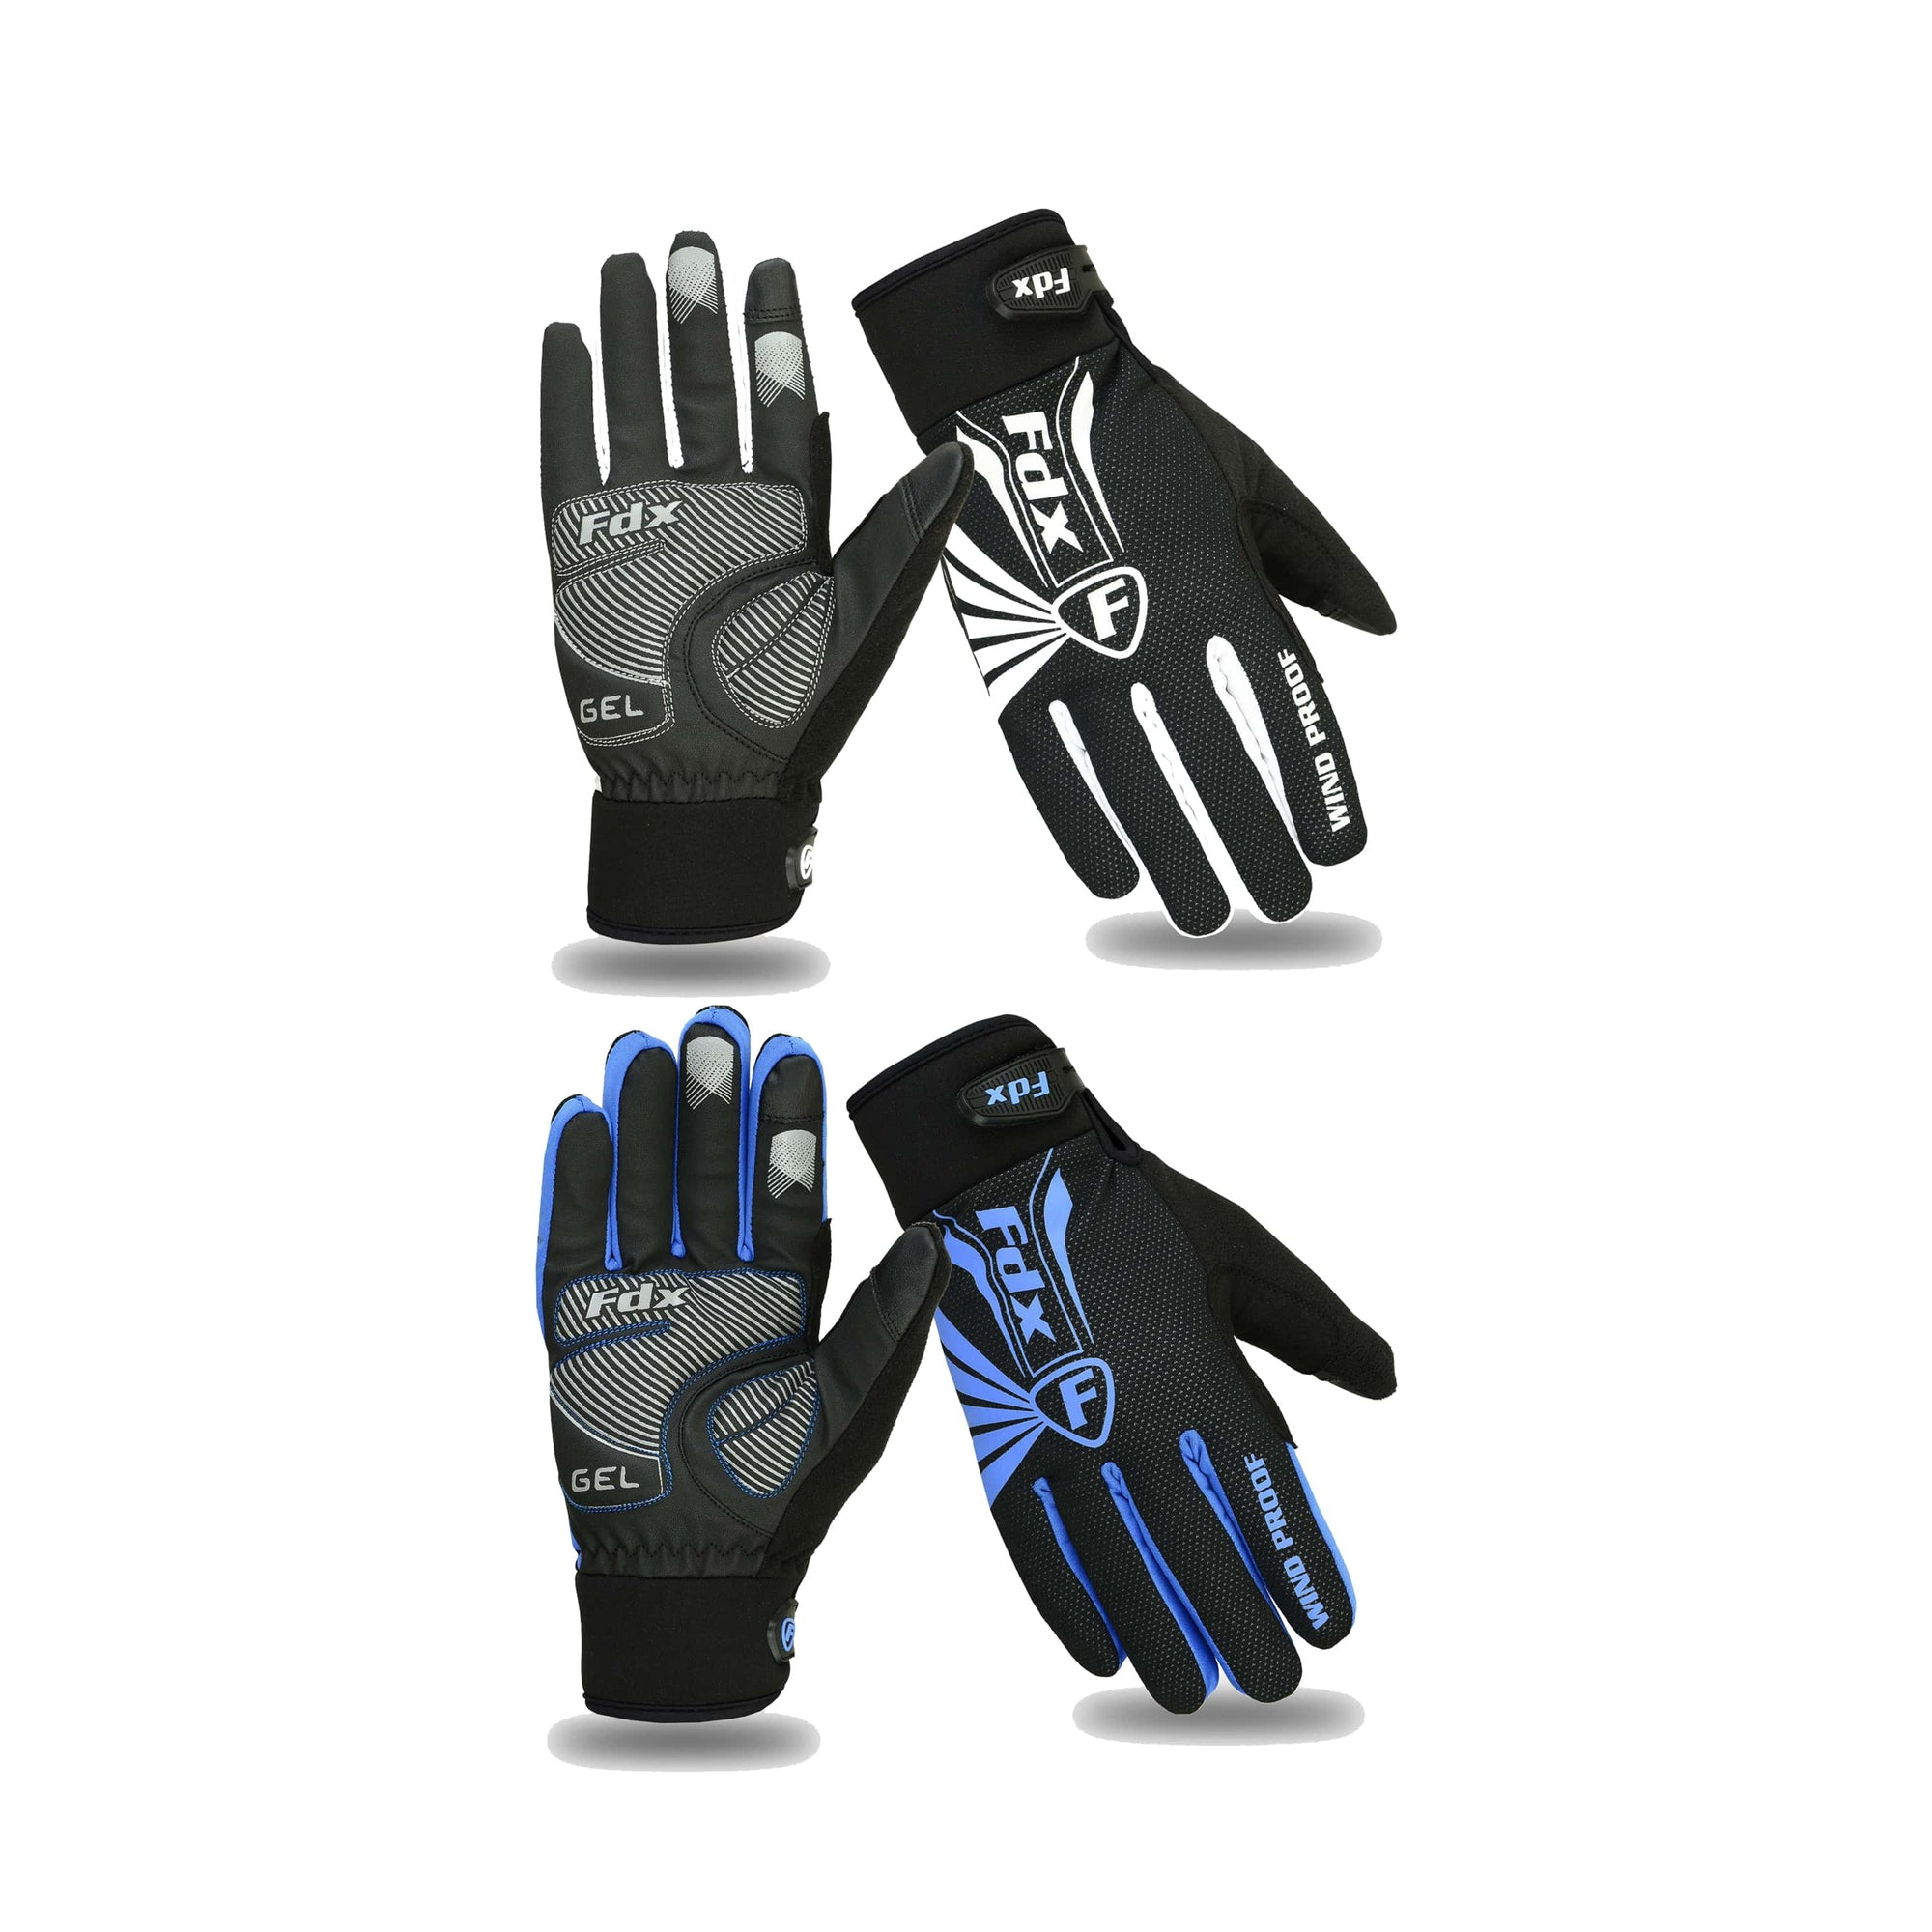 Fdx RD Full Finger Windproof Winter Cycling Gloves